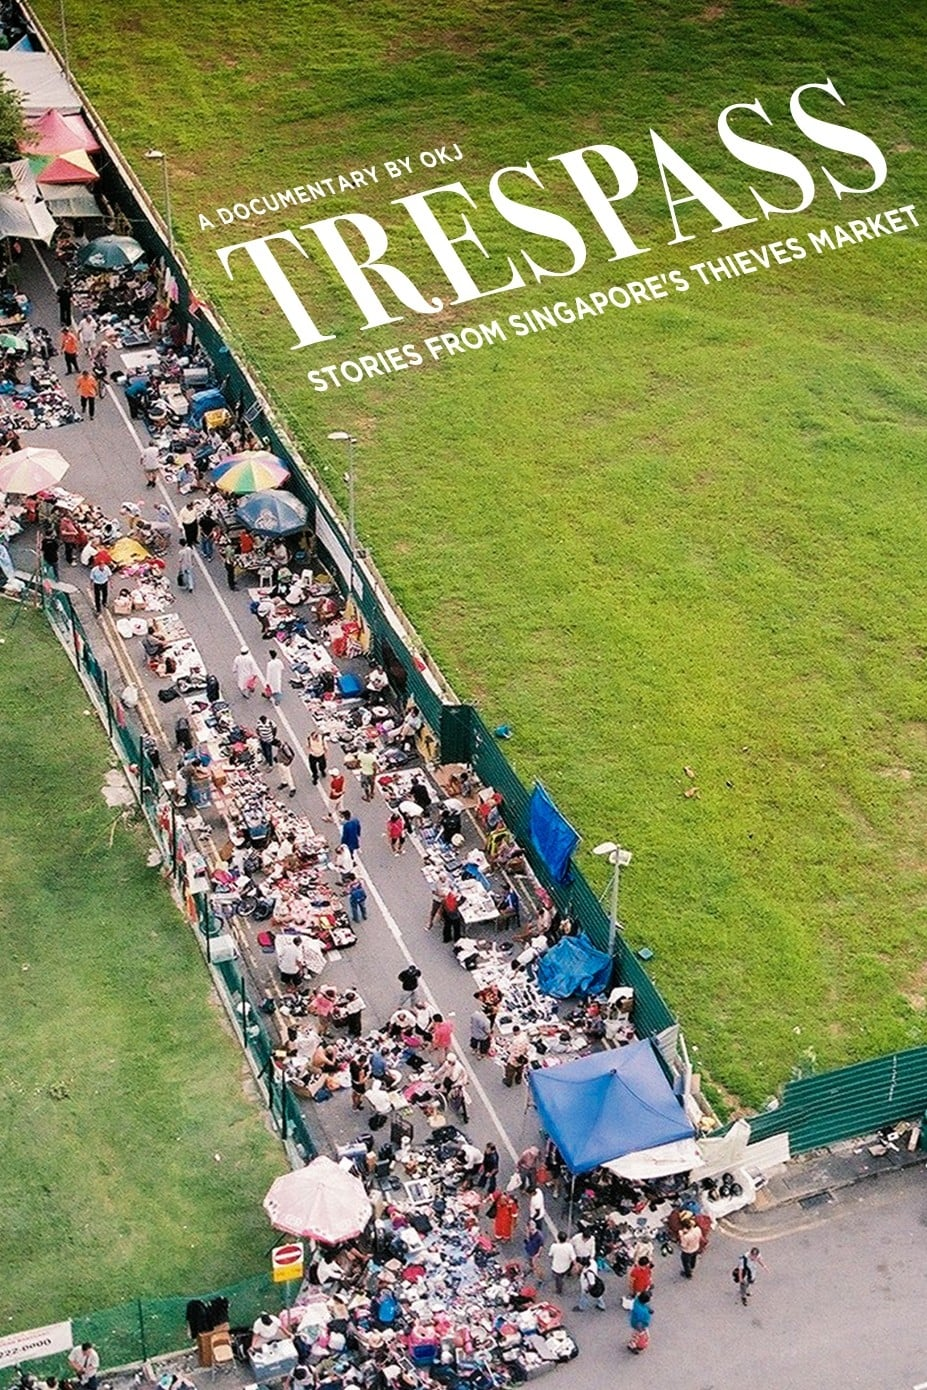 Trespass: Stories from Singapore's Thieves Market (2019)